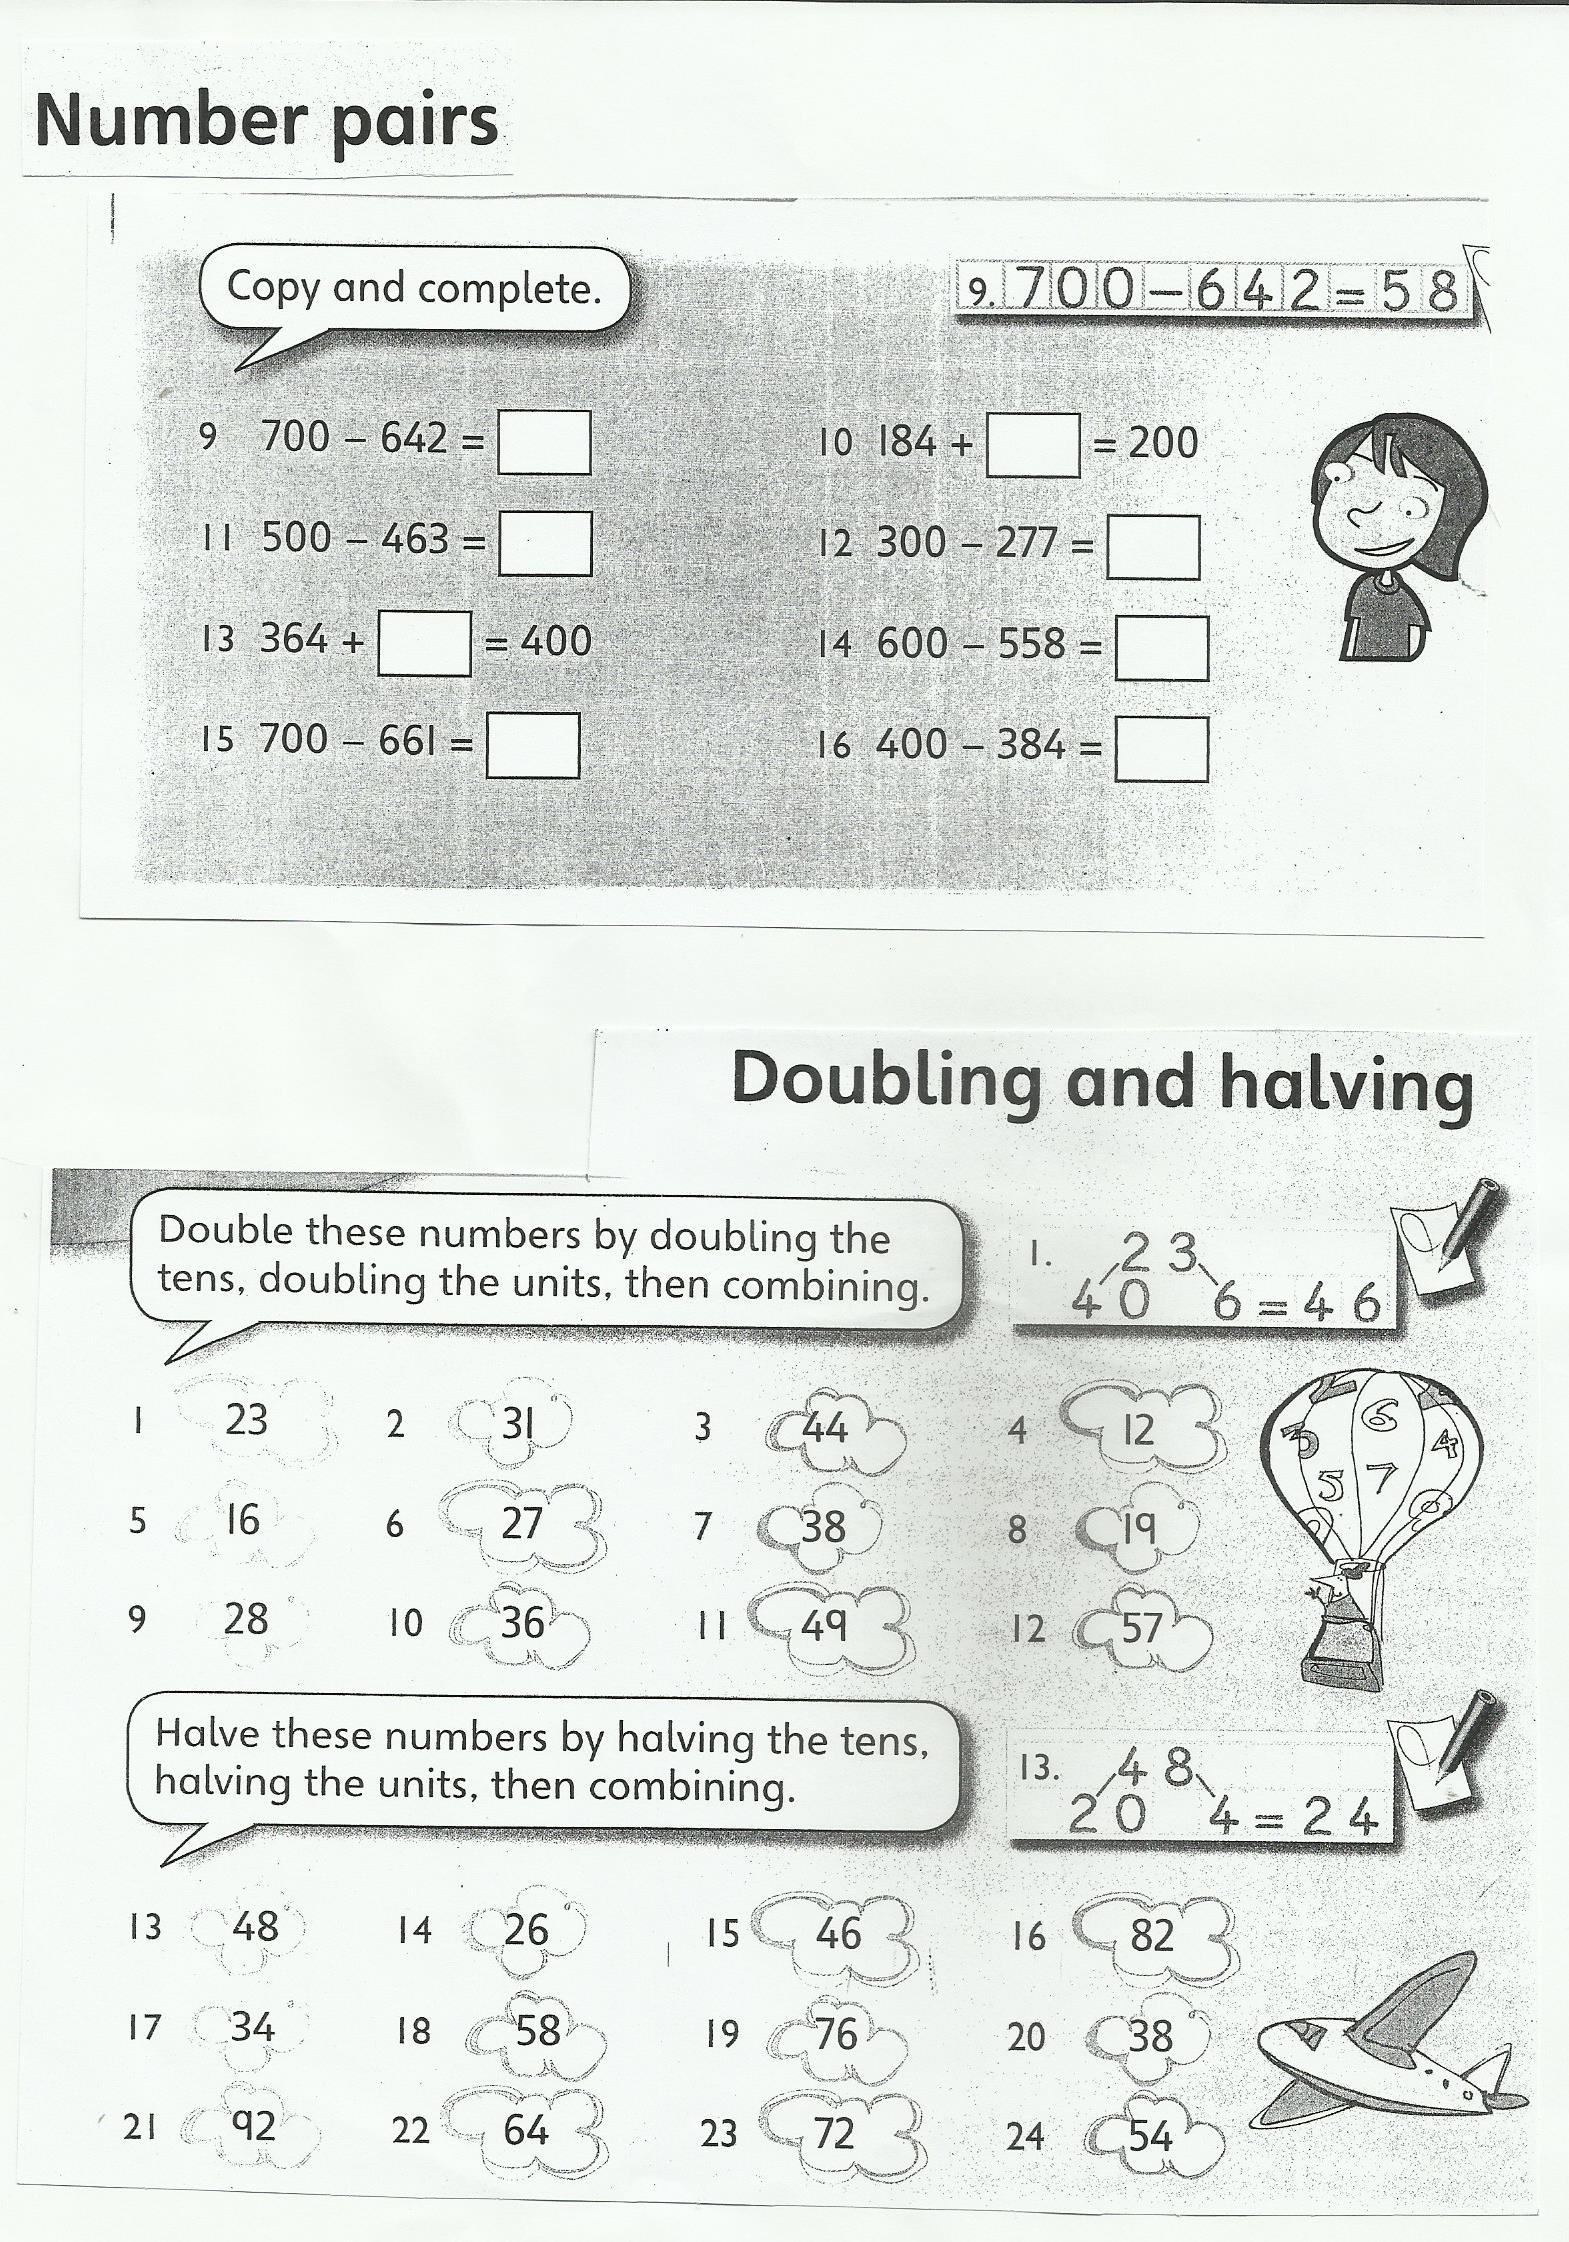 Worksheet For Class 3 Sst